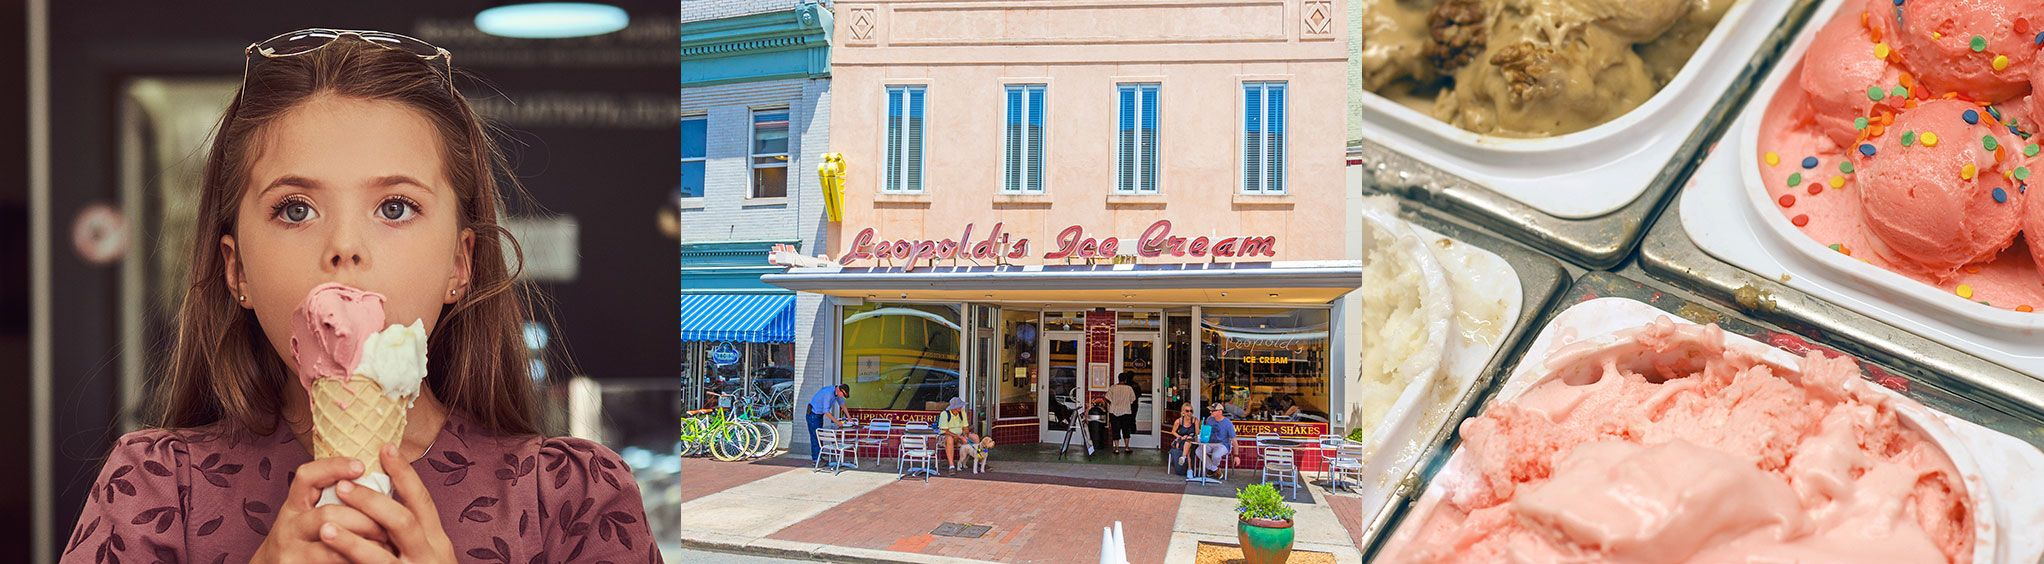 Leopold's Ice Cream Parlor